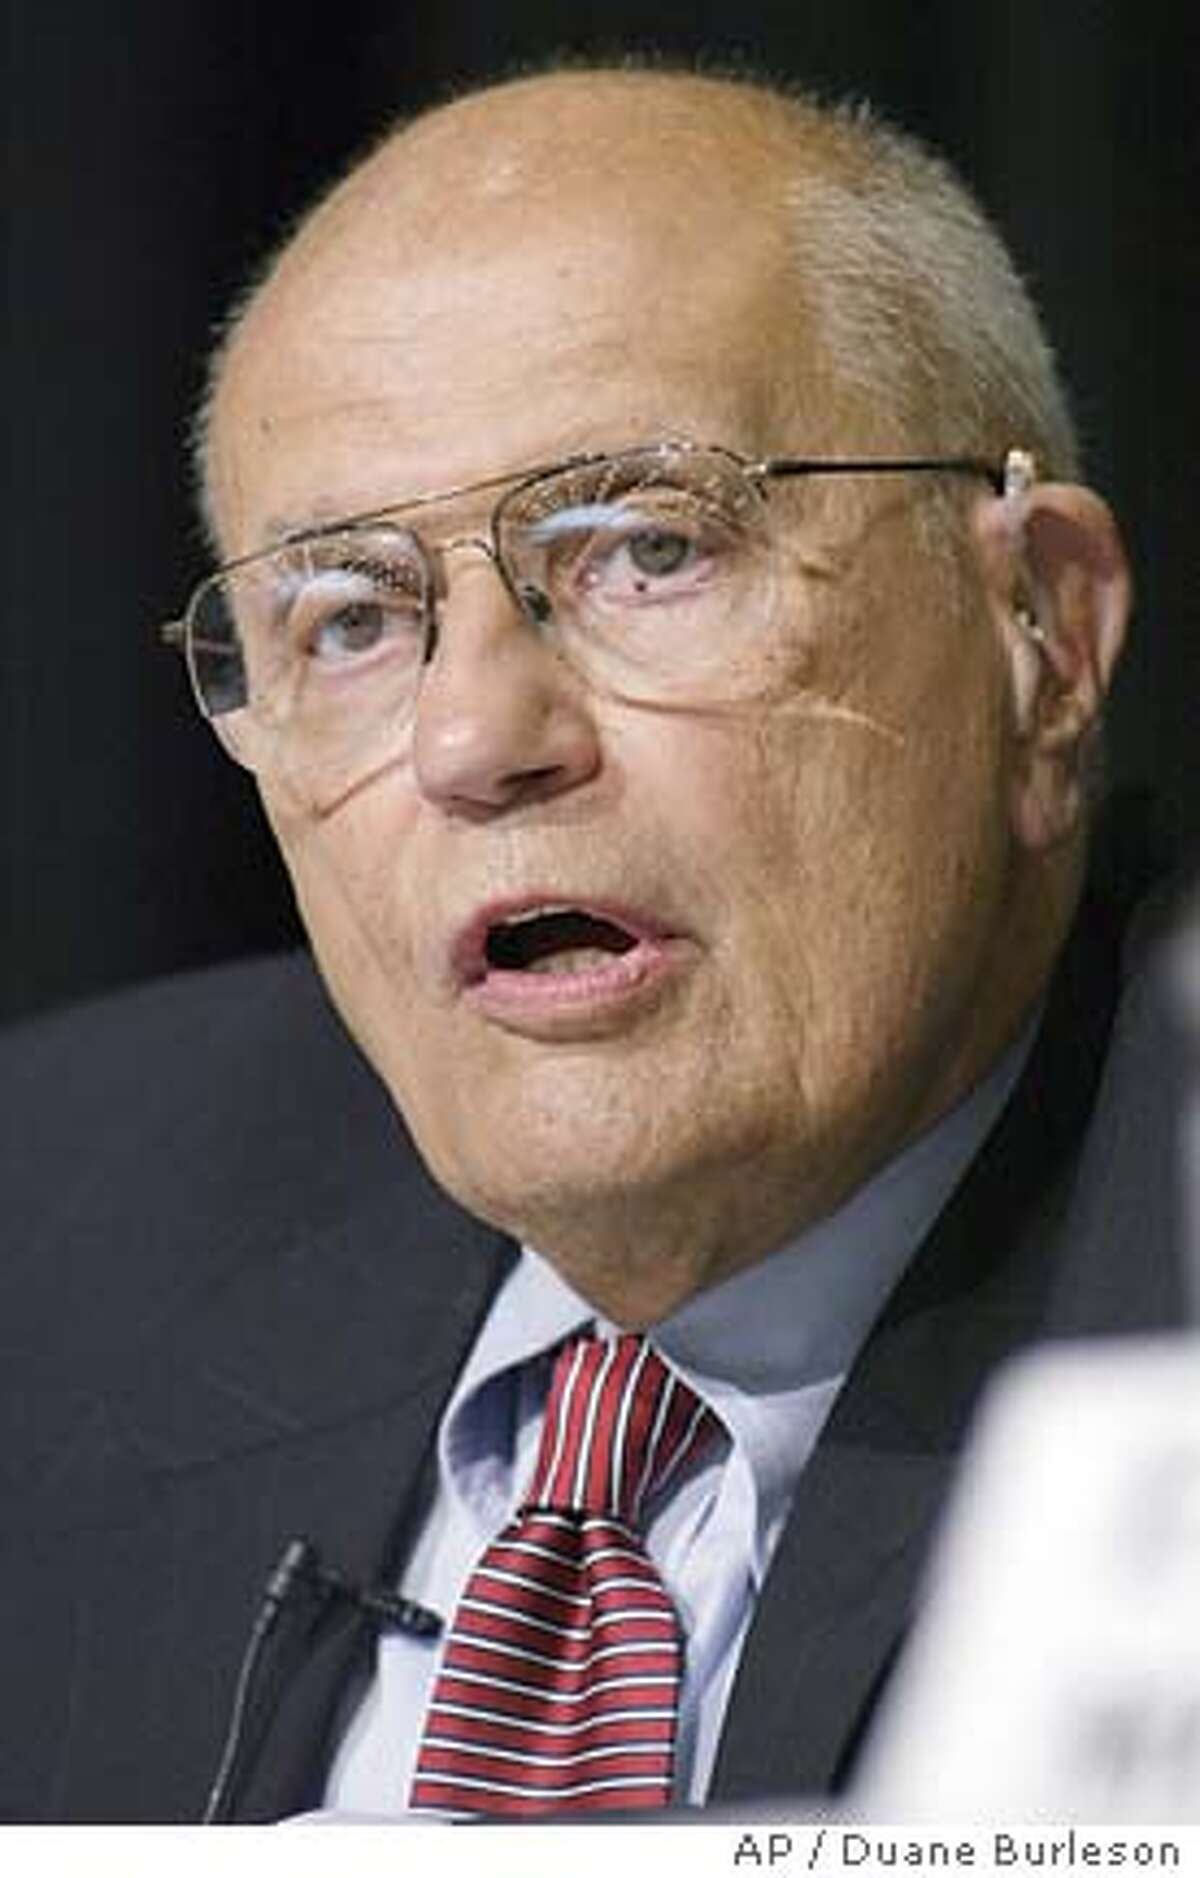 Representative John Dingell, D-Mich., responds to a question during his debate with Rep. Lynn Rivers, D-Mich., in Dearborn, Mich., Saturday, July 27, 2002. The two lawmakers are seeking the Democratic nomination to run for Michigan's 15th District Congressional seat. Dingell and Rivers are forced to face each other in the Aug. 6 primary under a redistricting map drawn by a Republican Legislature. (AP Photo/Duane Burleson) also ran 09/26/03 cat Ran on: 10-28-2004 Rep. John Dingell said the proposal would protect utility profits while hurting conservation efforts. Ran on: 10-28-2004 Rep. John Dingell said the proposal would protect utility profits while hurting conservation efforts.